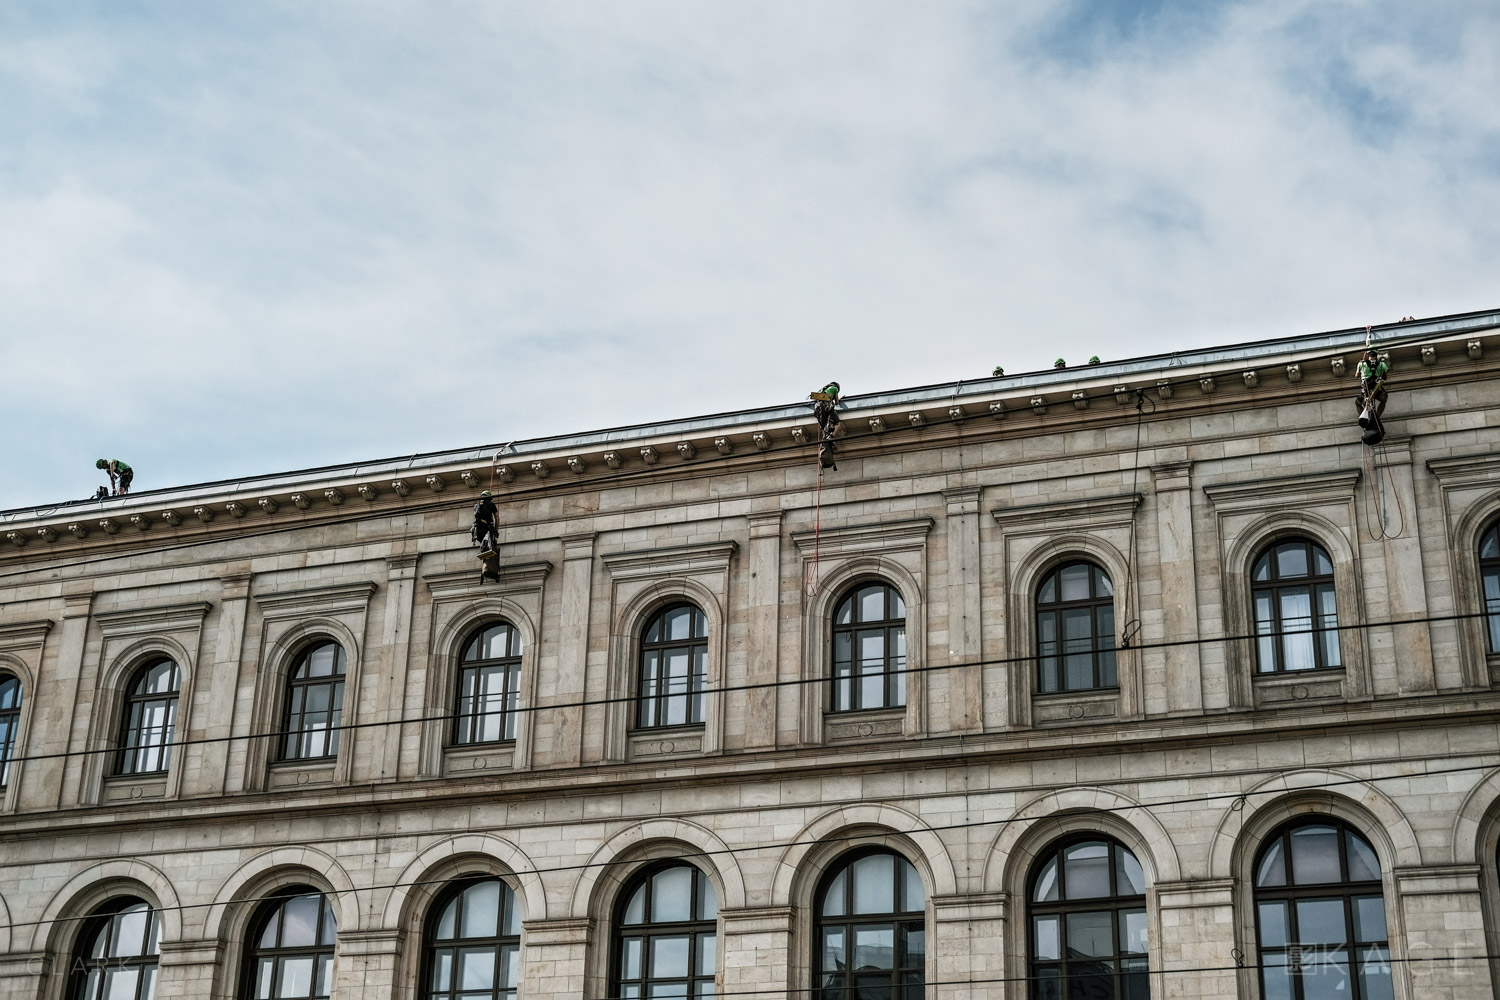 The four Greenpeace protesters make their way back to the roof to face the consequences